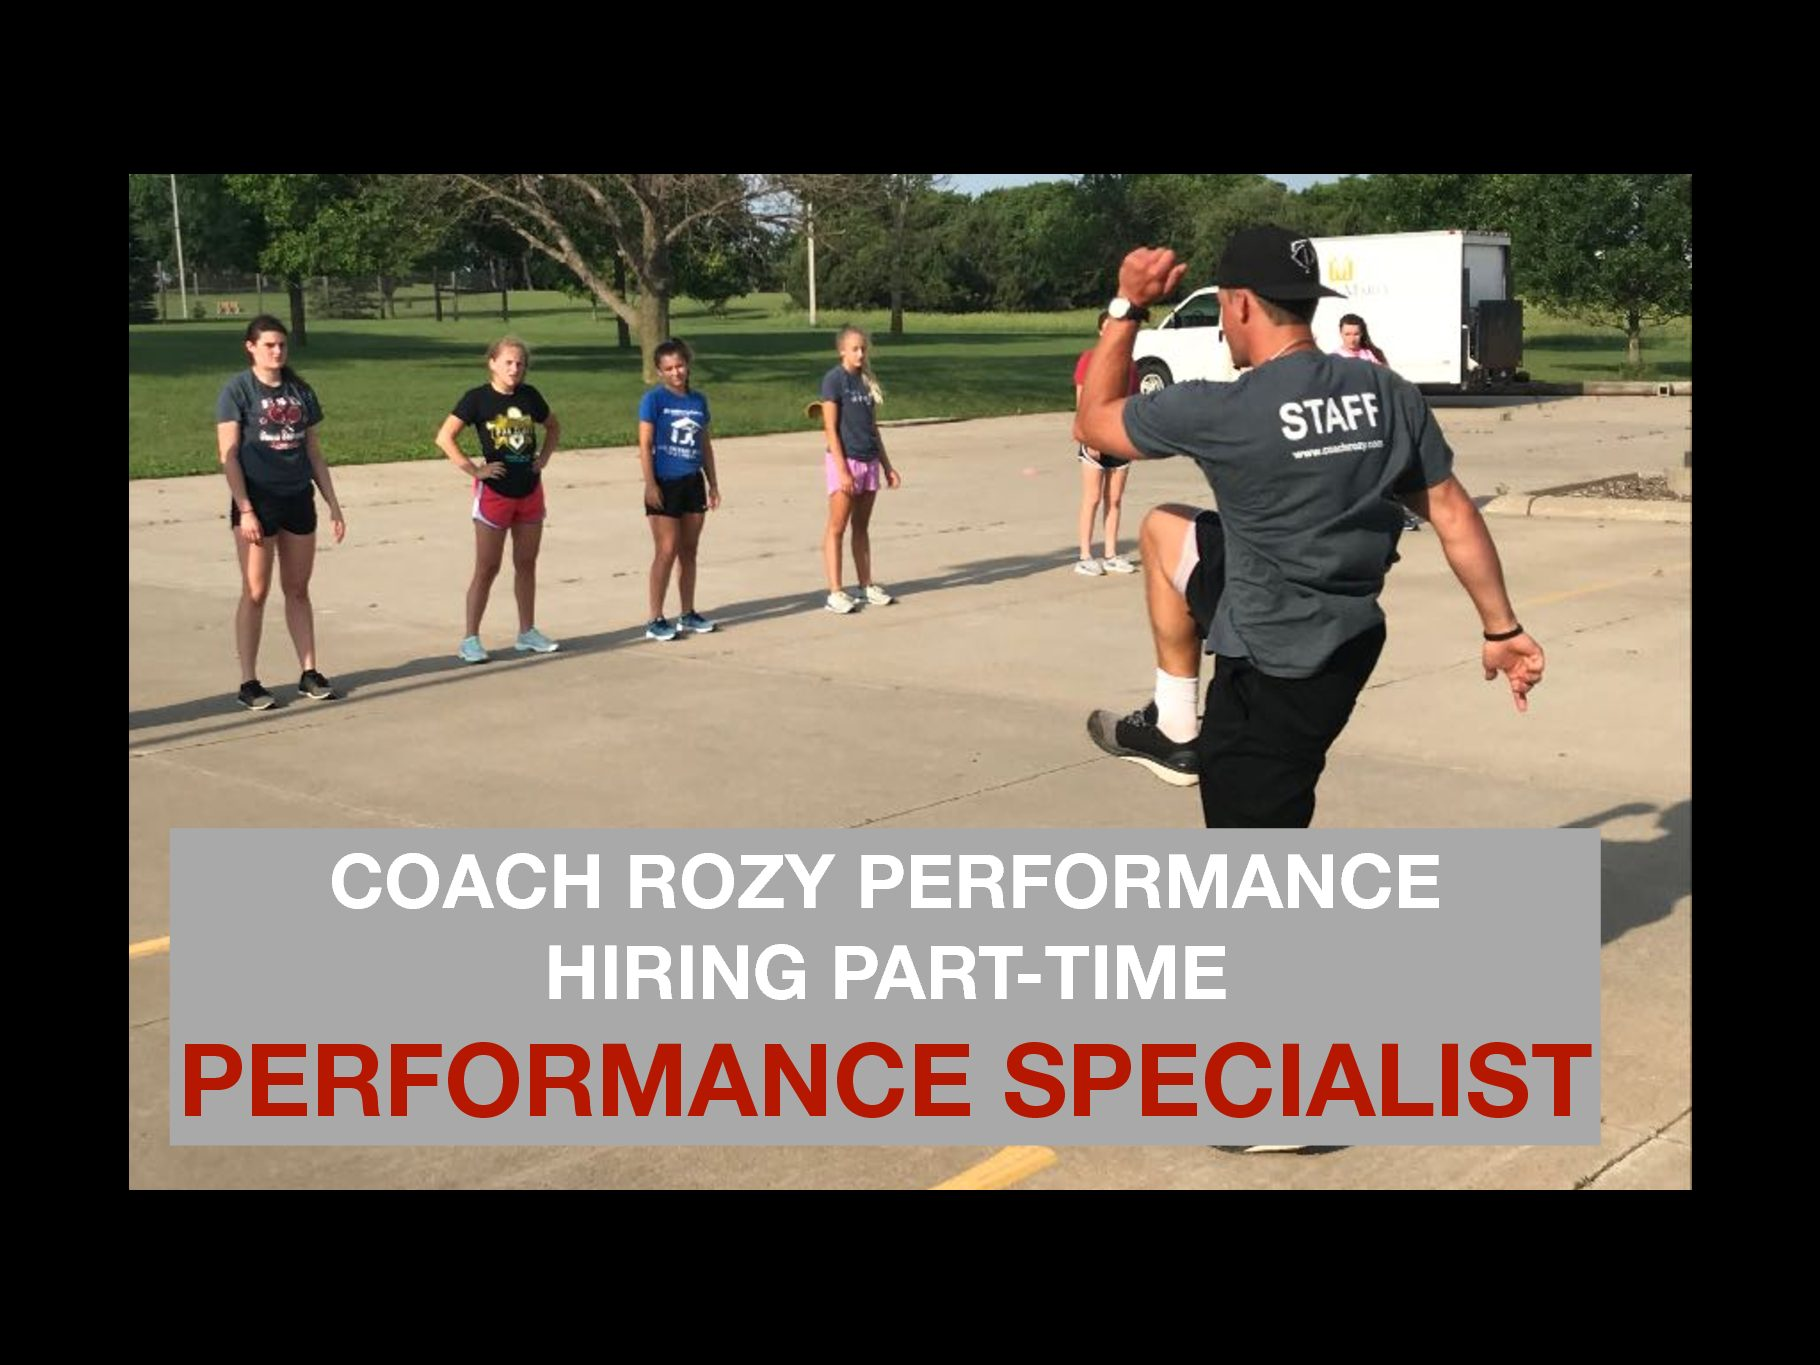 HIRING PART-TIME PERFORMANCE SPECIALIST